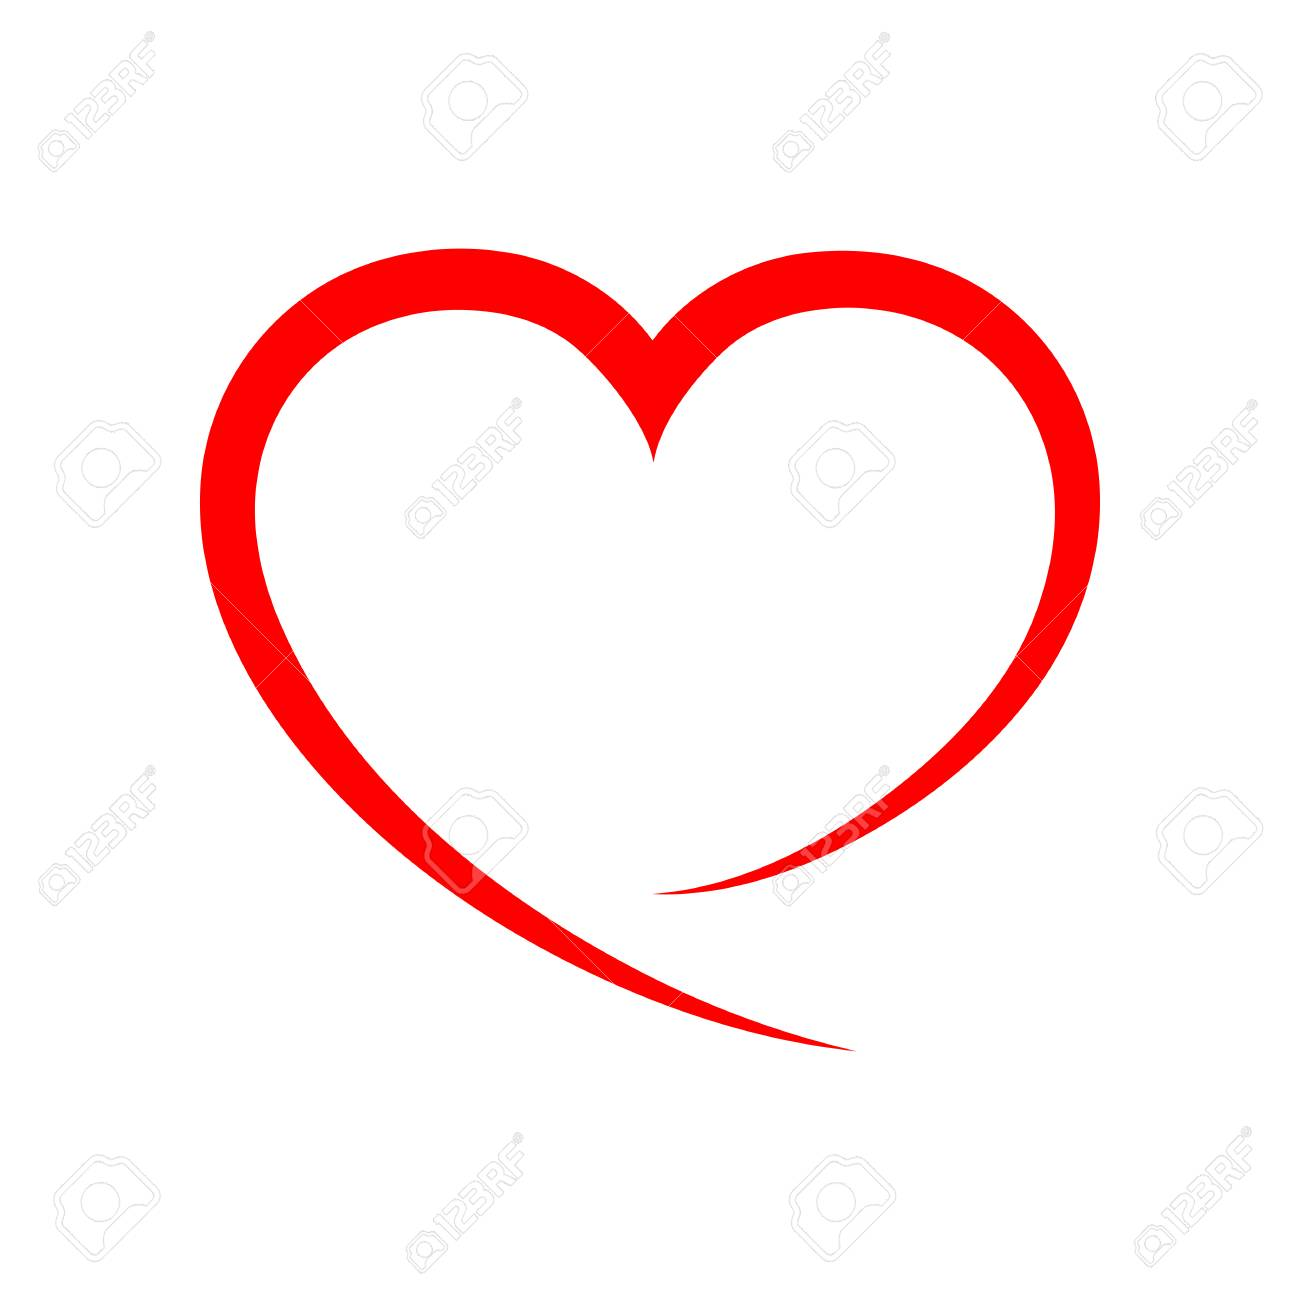 abstract heart shape outline vector illustration red heart